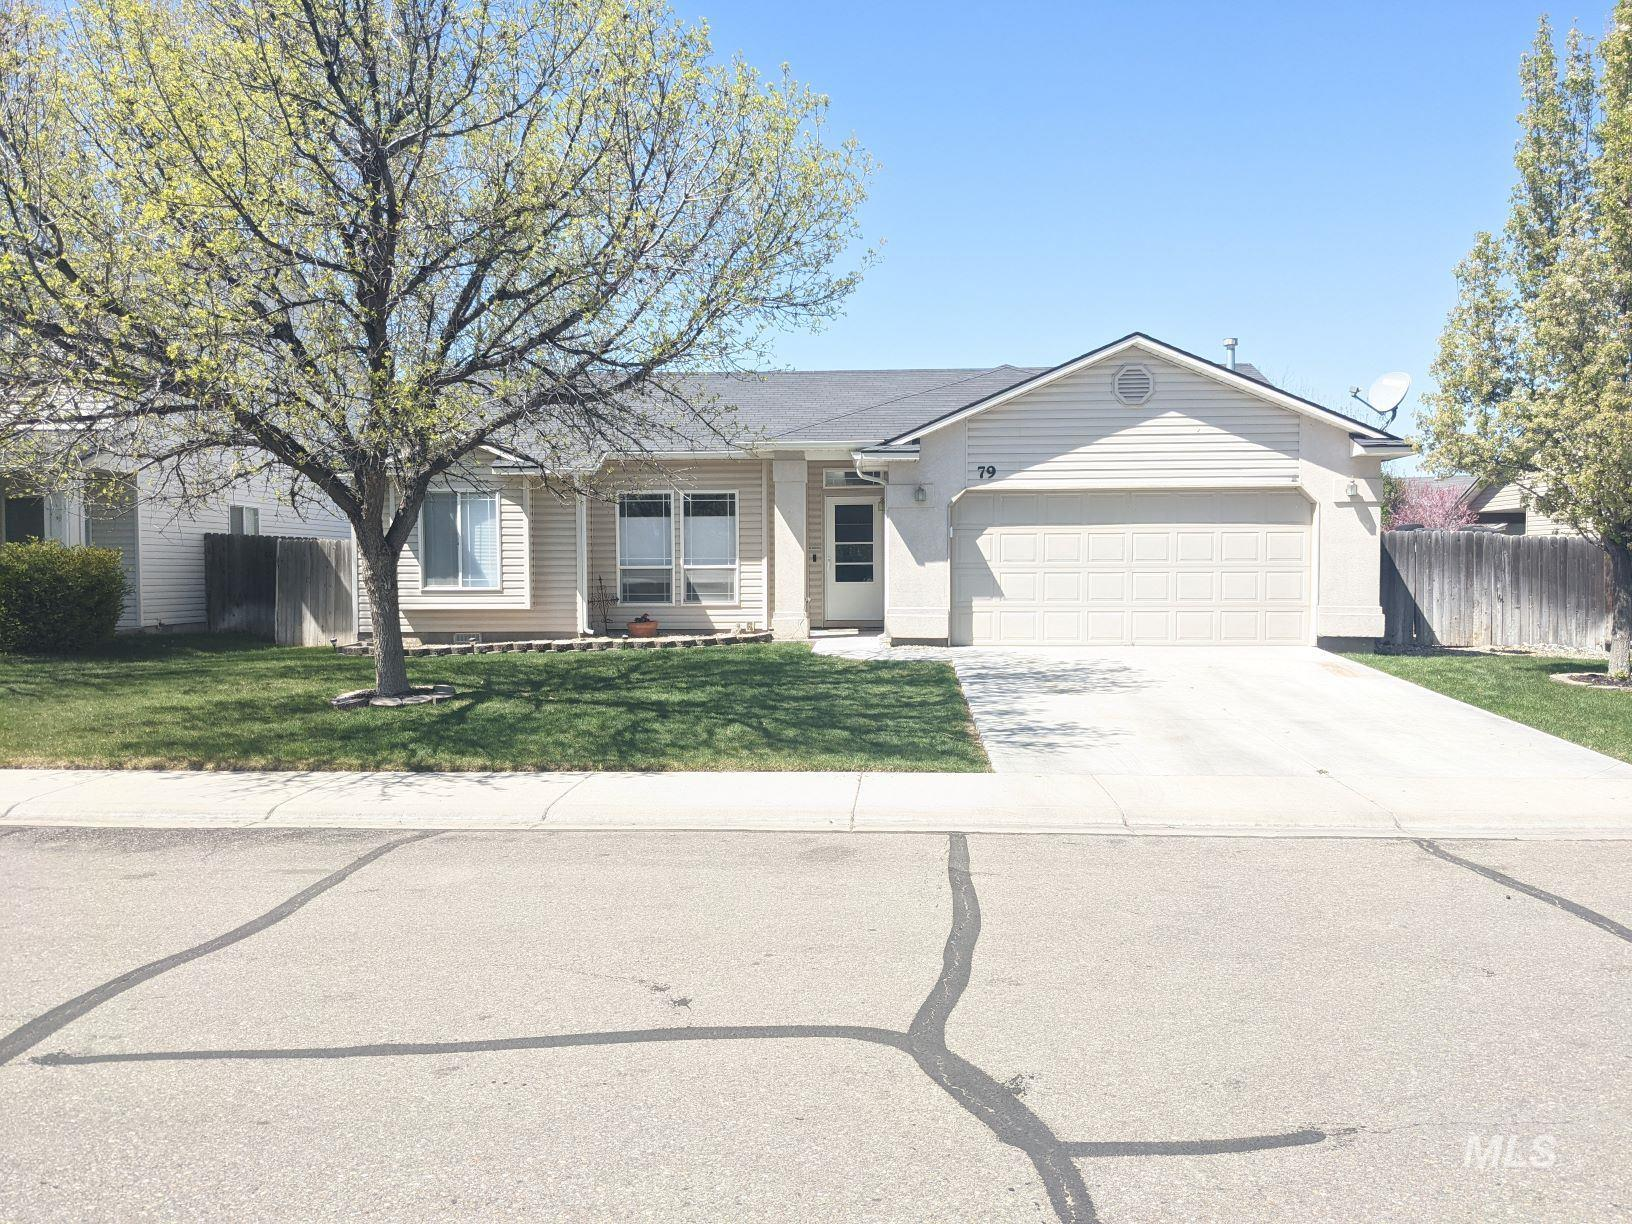 79 N Brandywine St Property Photo - Nampa, ID real estate listing